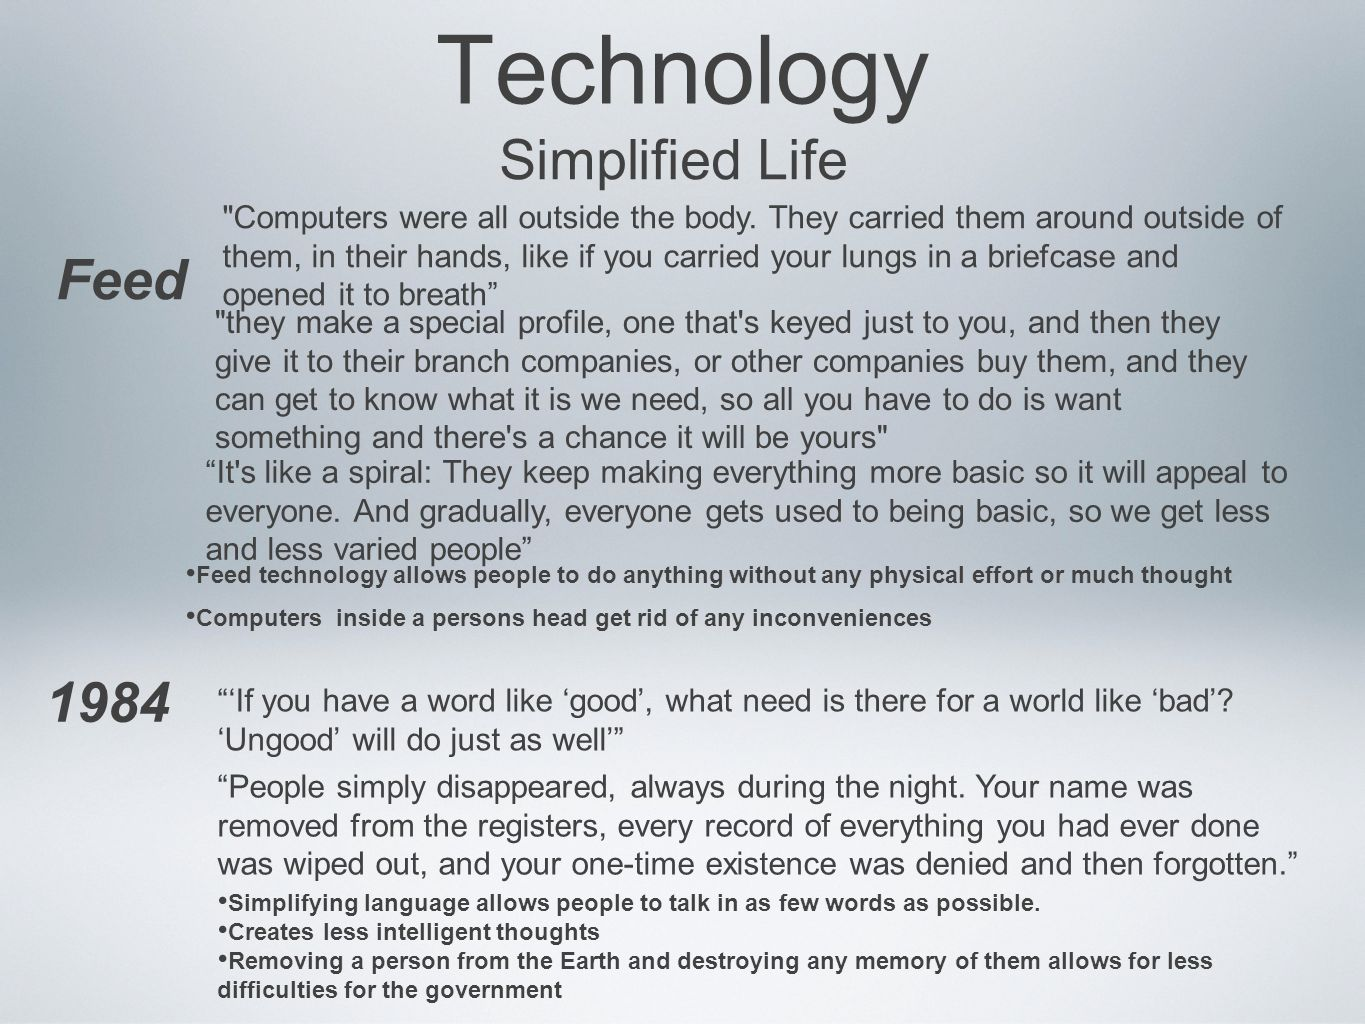 technology simplifies morden life Technology roleseach individual fulfills during life we use technology dailybasis  modern technology simplifies(简化)life somany ways  morden life (48.